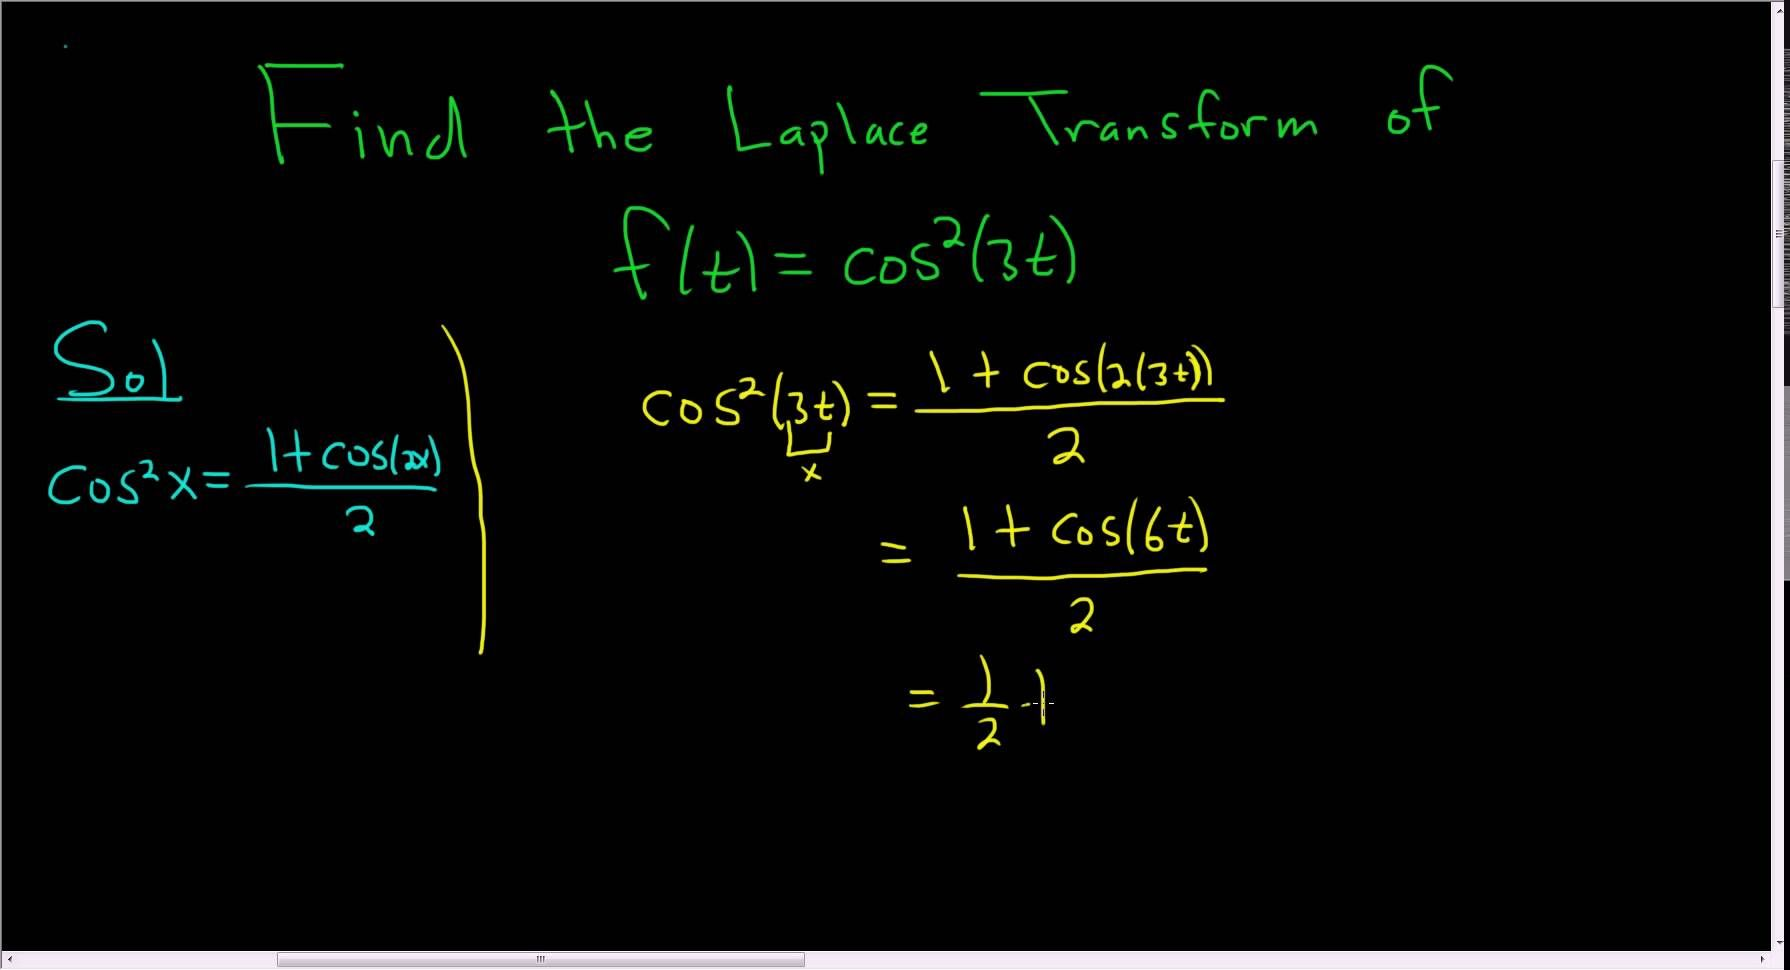 Find the Laplace Transform of f(t) = cos^2(3t)